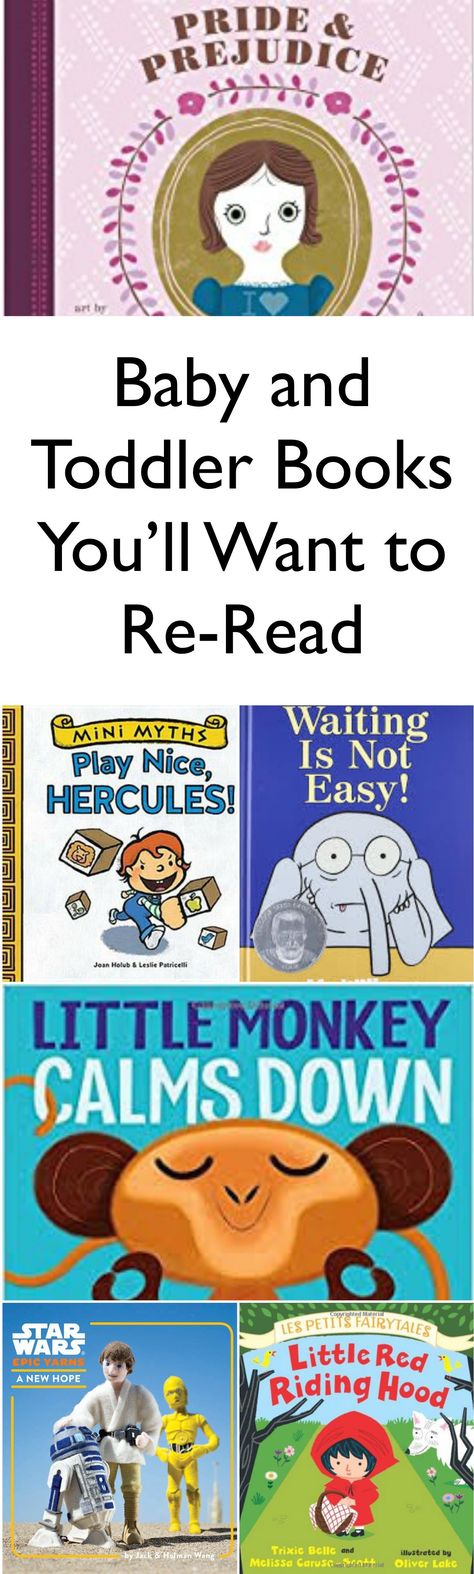 Baby and Toddler Books You'll Want to Re-Read